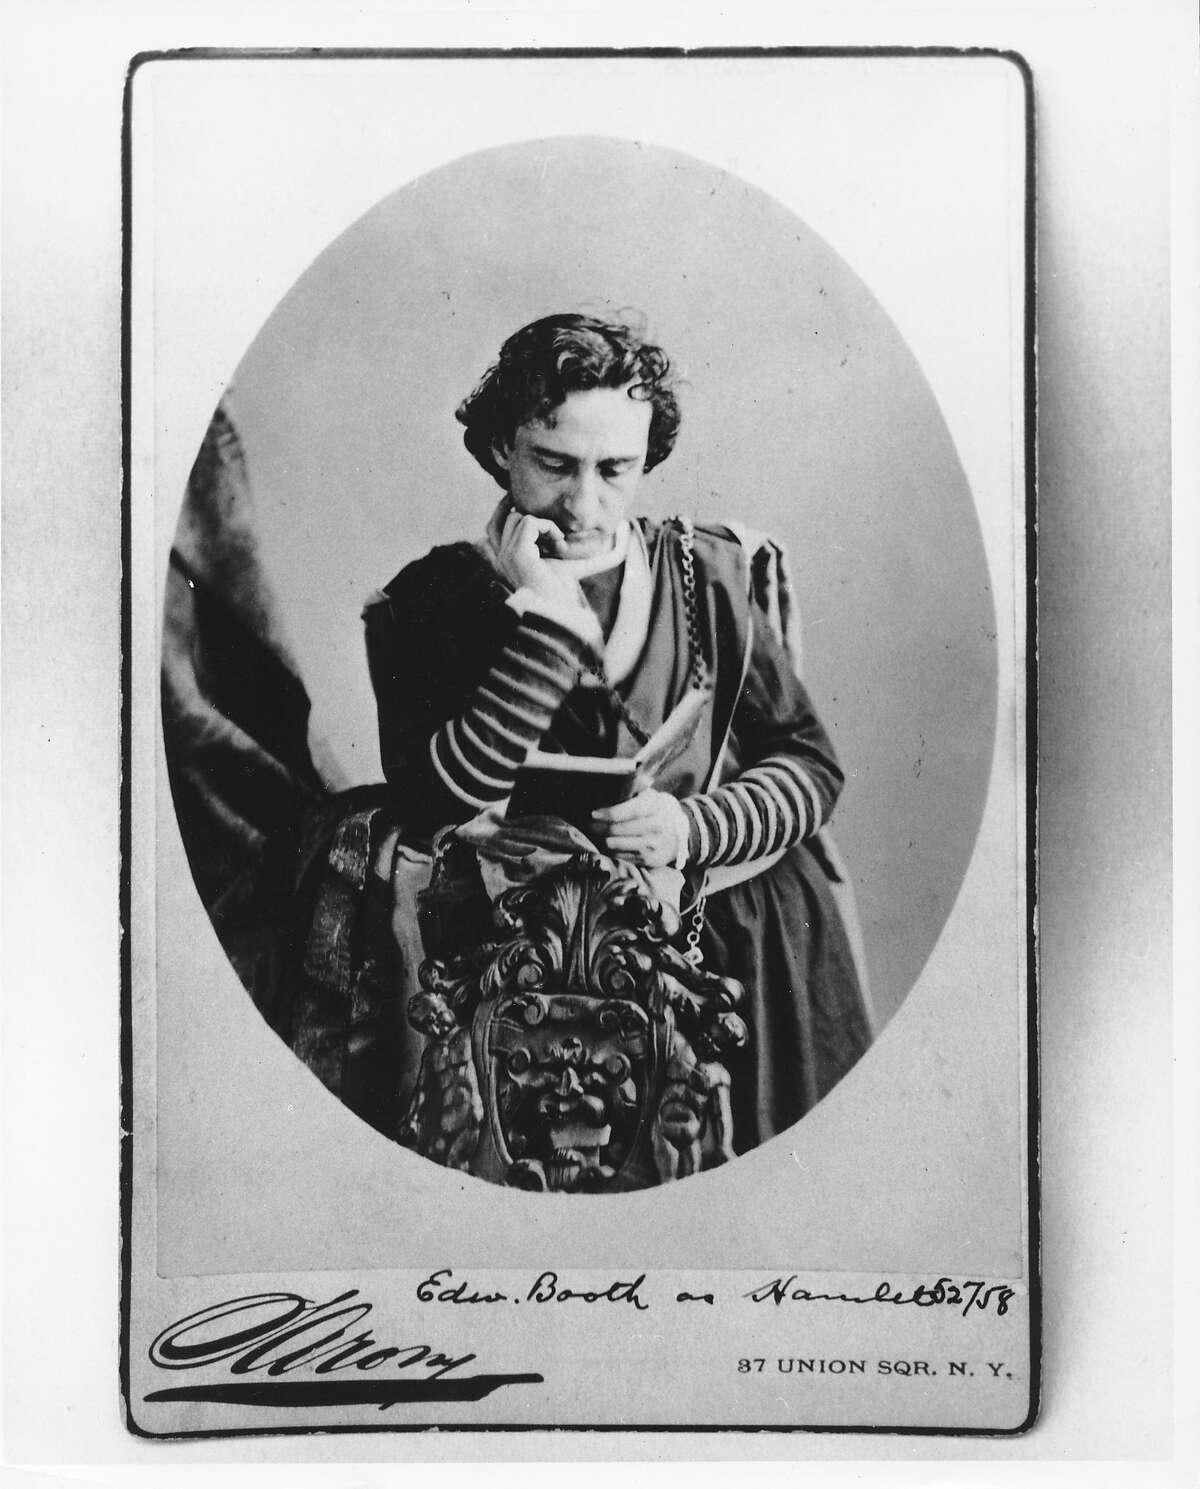 Edwin Booth as Hamlet Back of photo says another photograph from Cal-Pictures